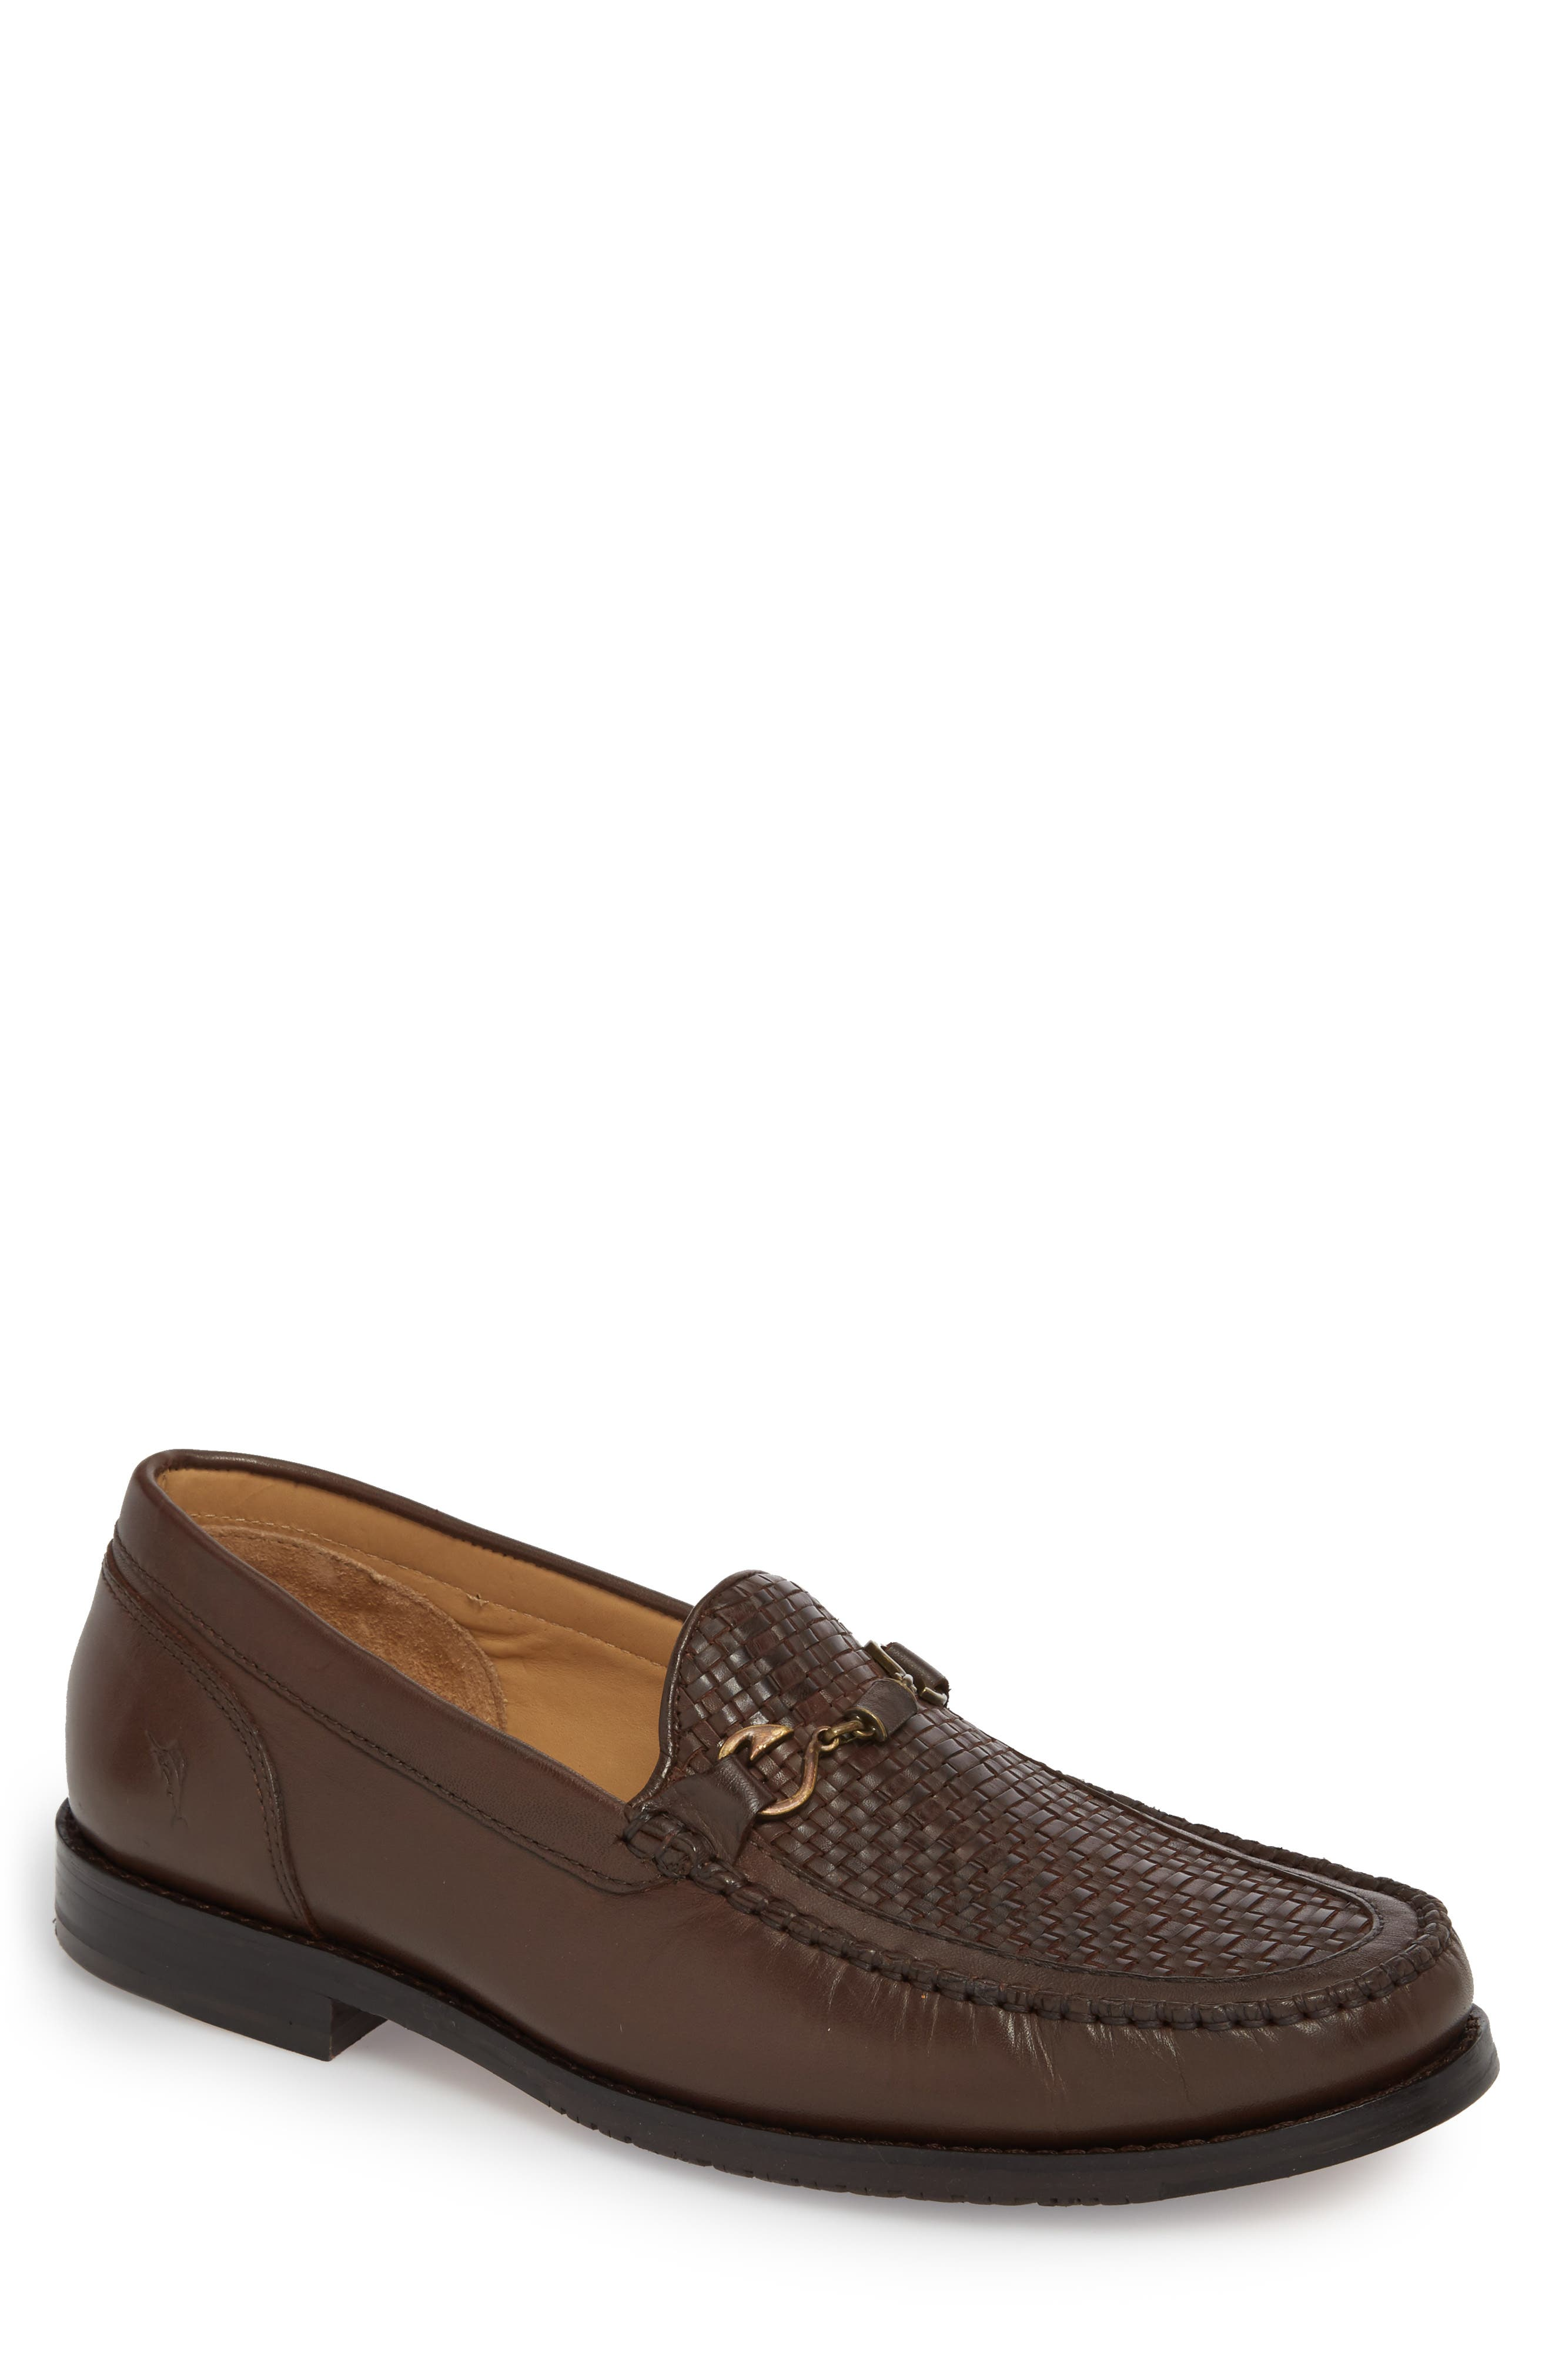 Maya Bay Bit Loafer,                         Main,                         color, Dark Brown Woven Leather